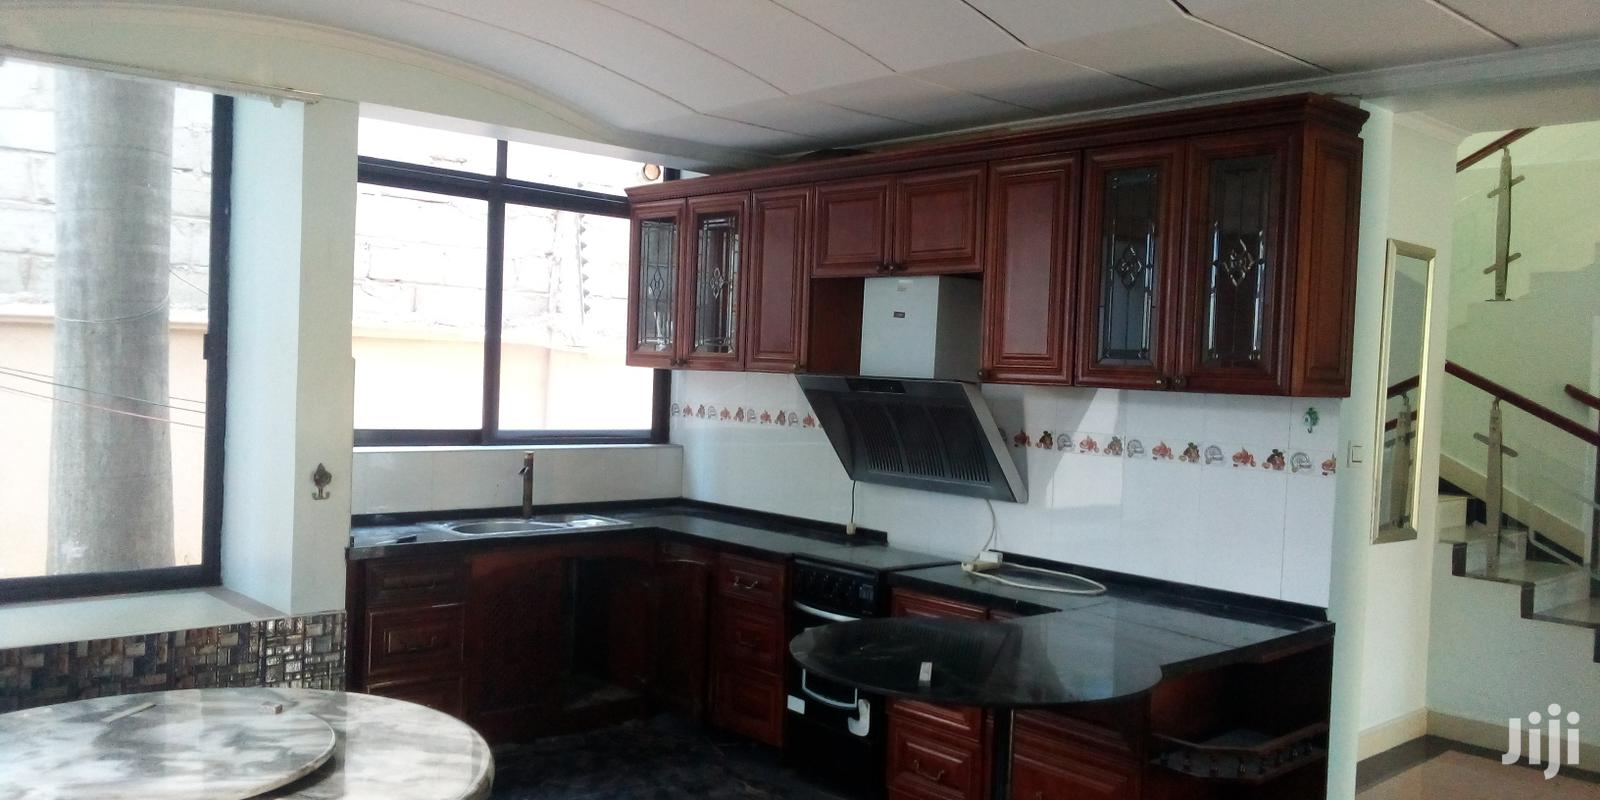 Specious 3 Bedrooms Fully Furnished for Rent at Mikocheni | Houses & Apartments For Rent for sale in Mikocheni, Kinondoni, Tanzania